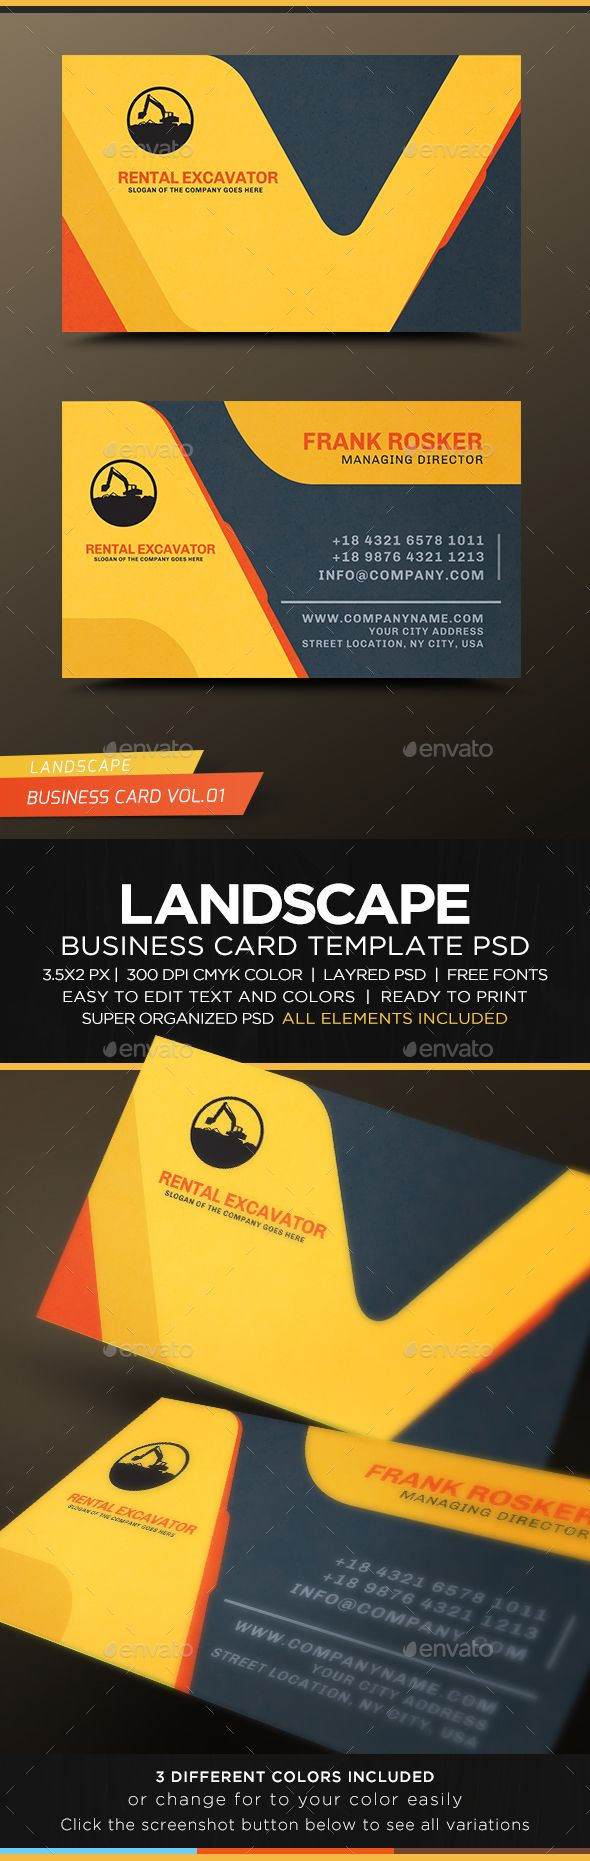 189 best business card images on pinterest business card design